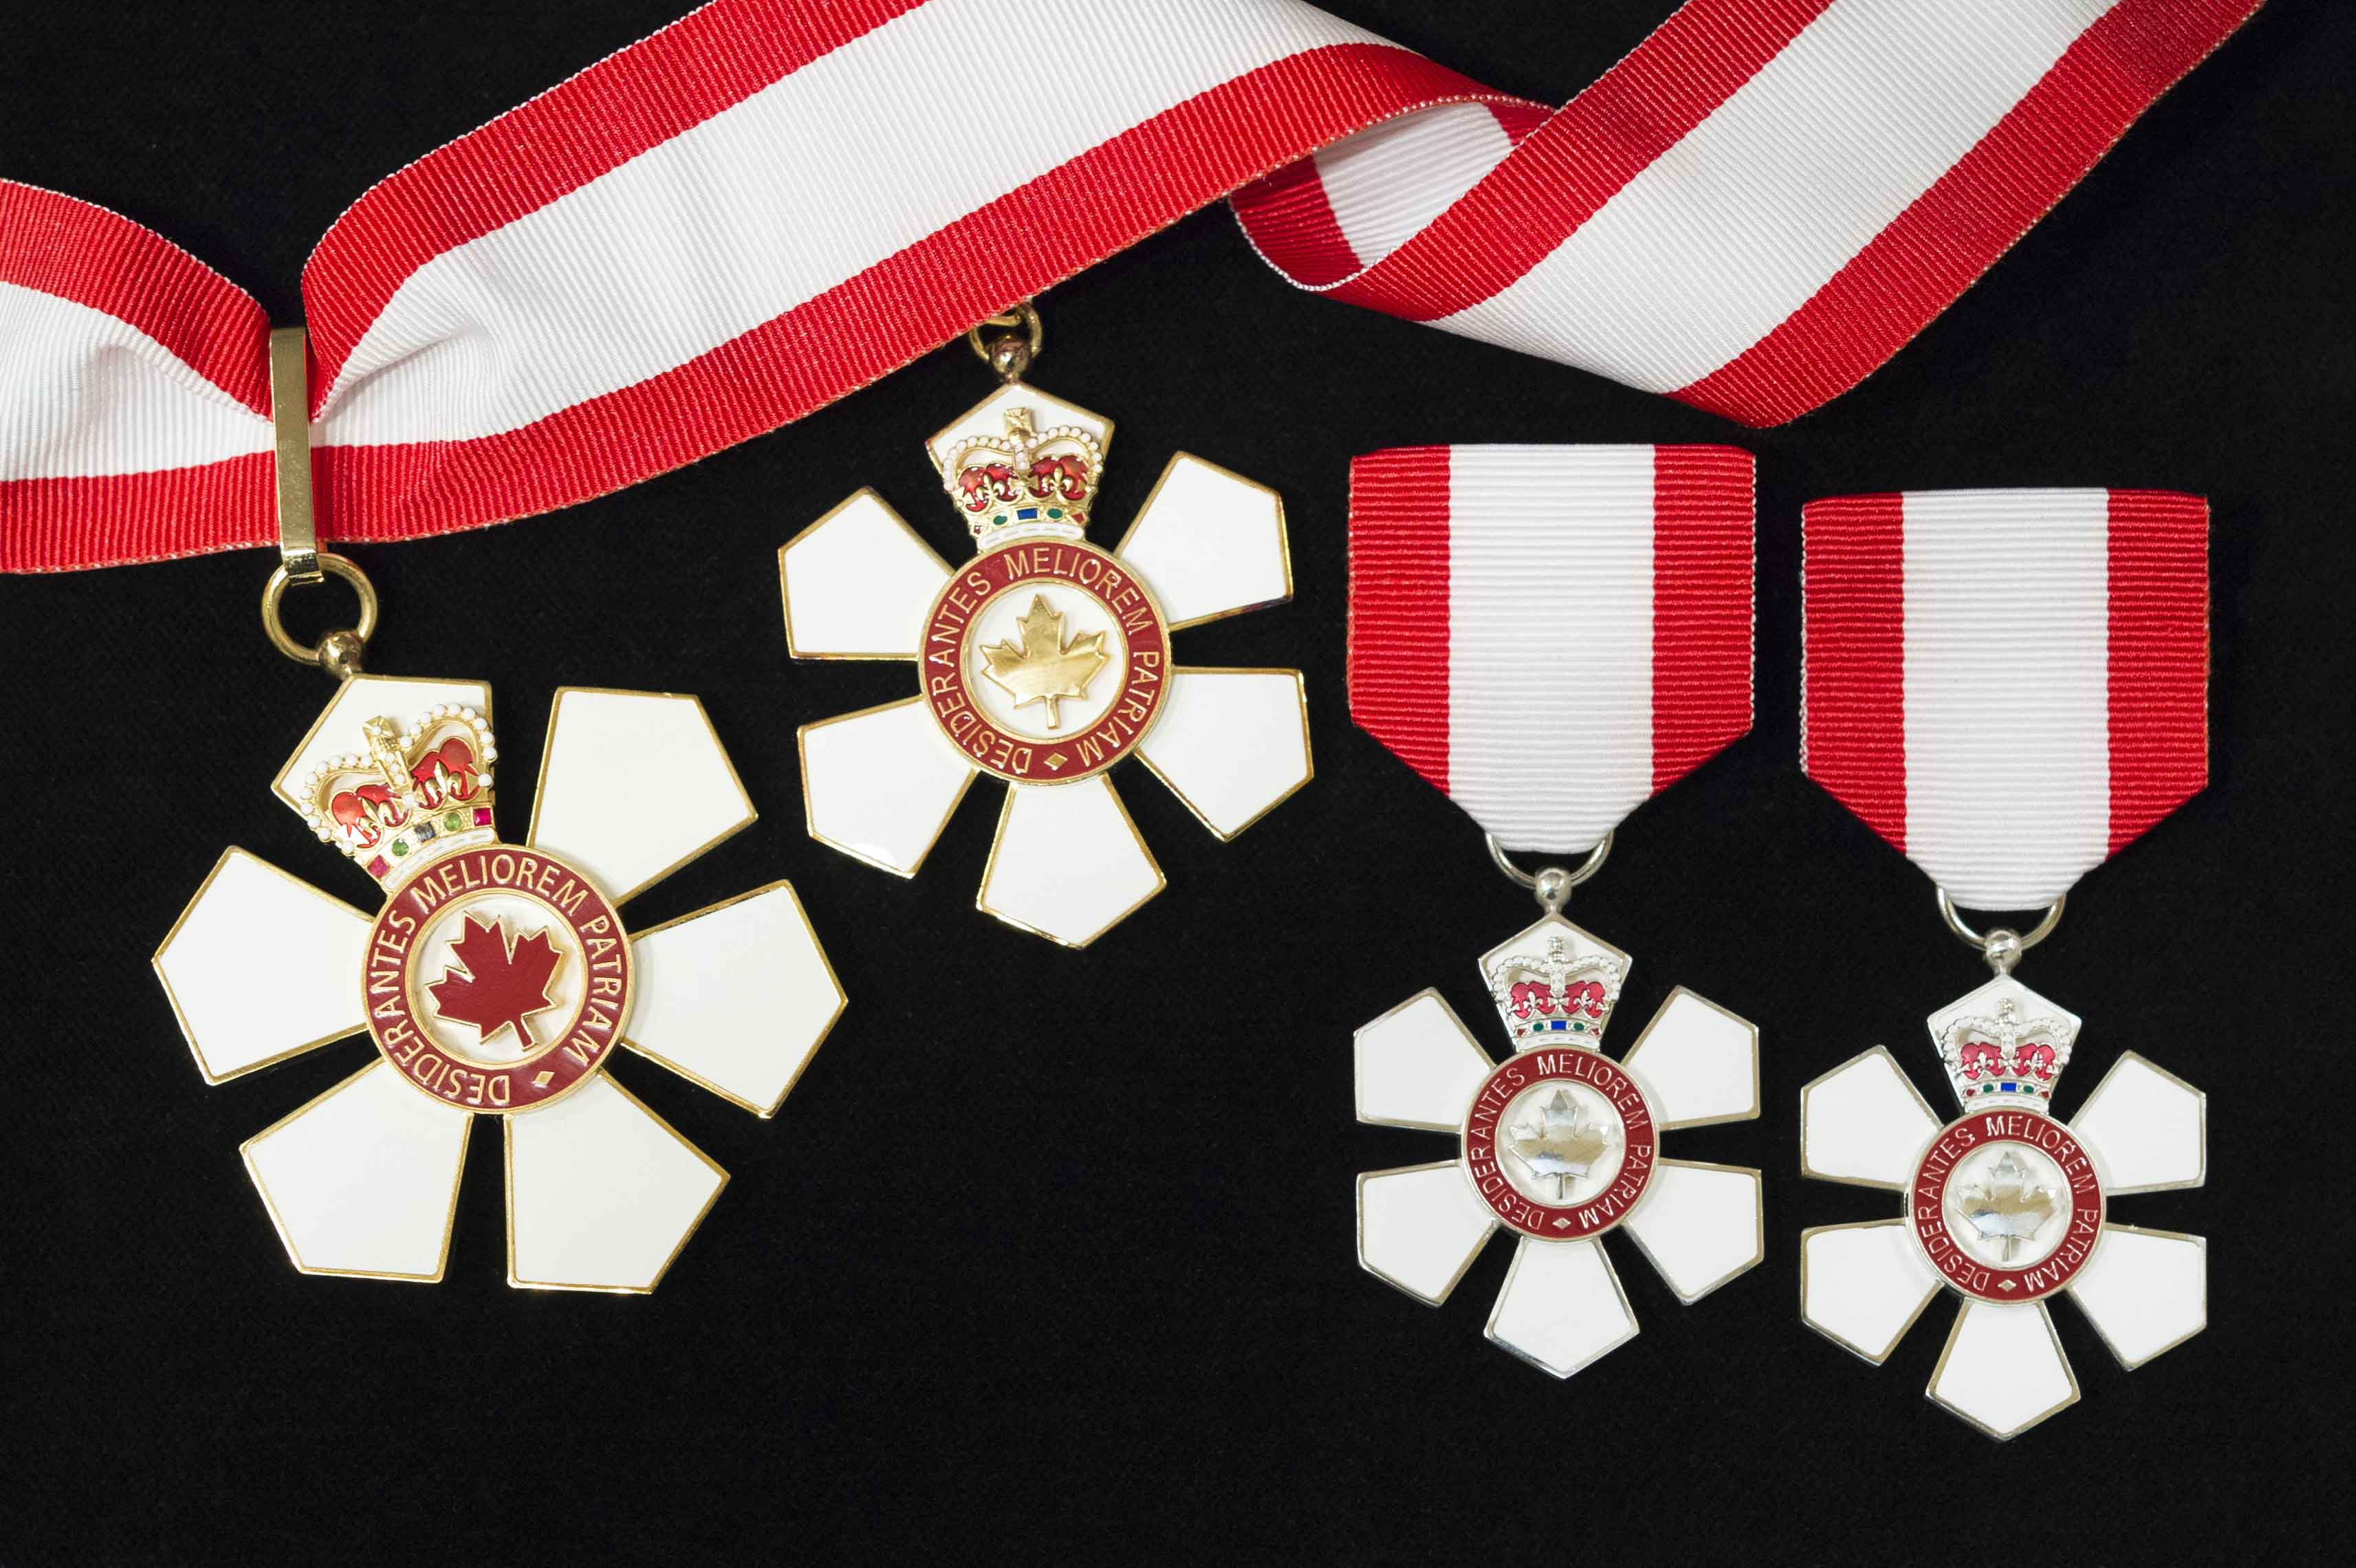 Governor General Julie Payette presided over an Order of Canada investiture ceremony at Rideau Hall, on January 24, 2018.